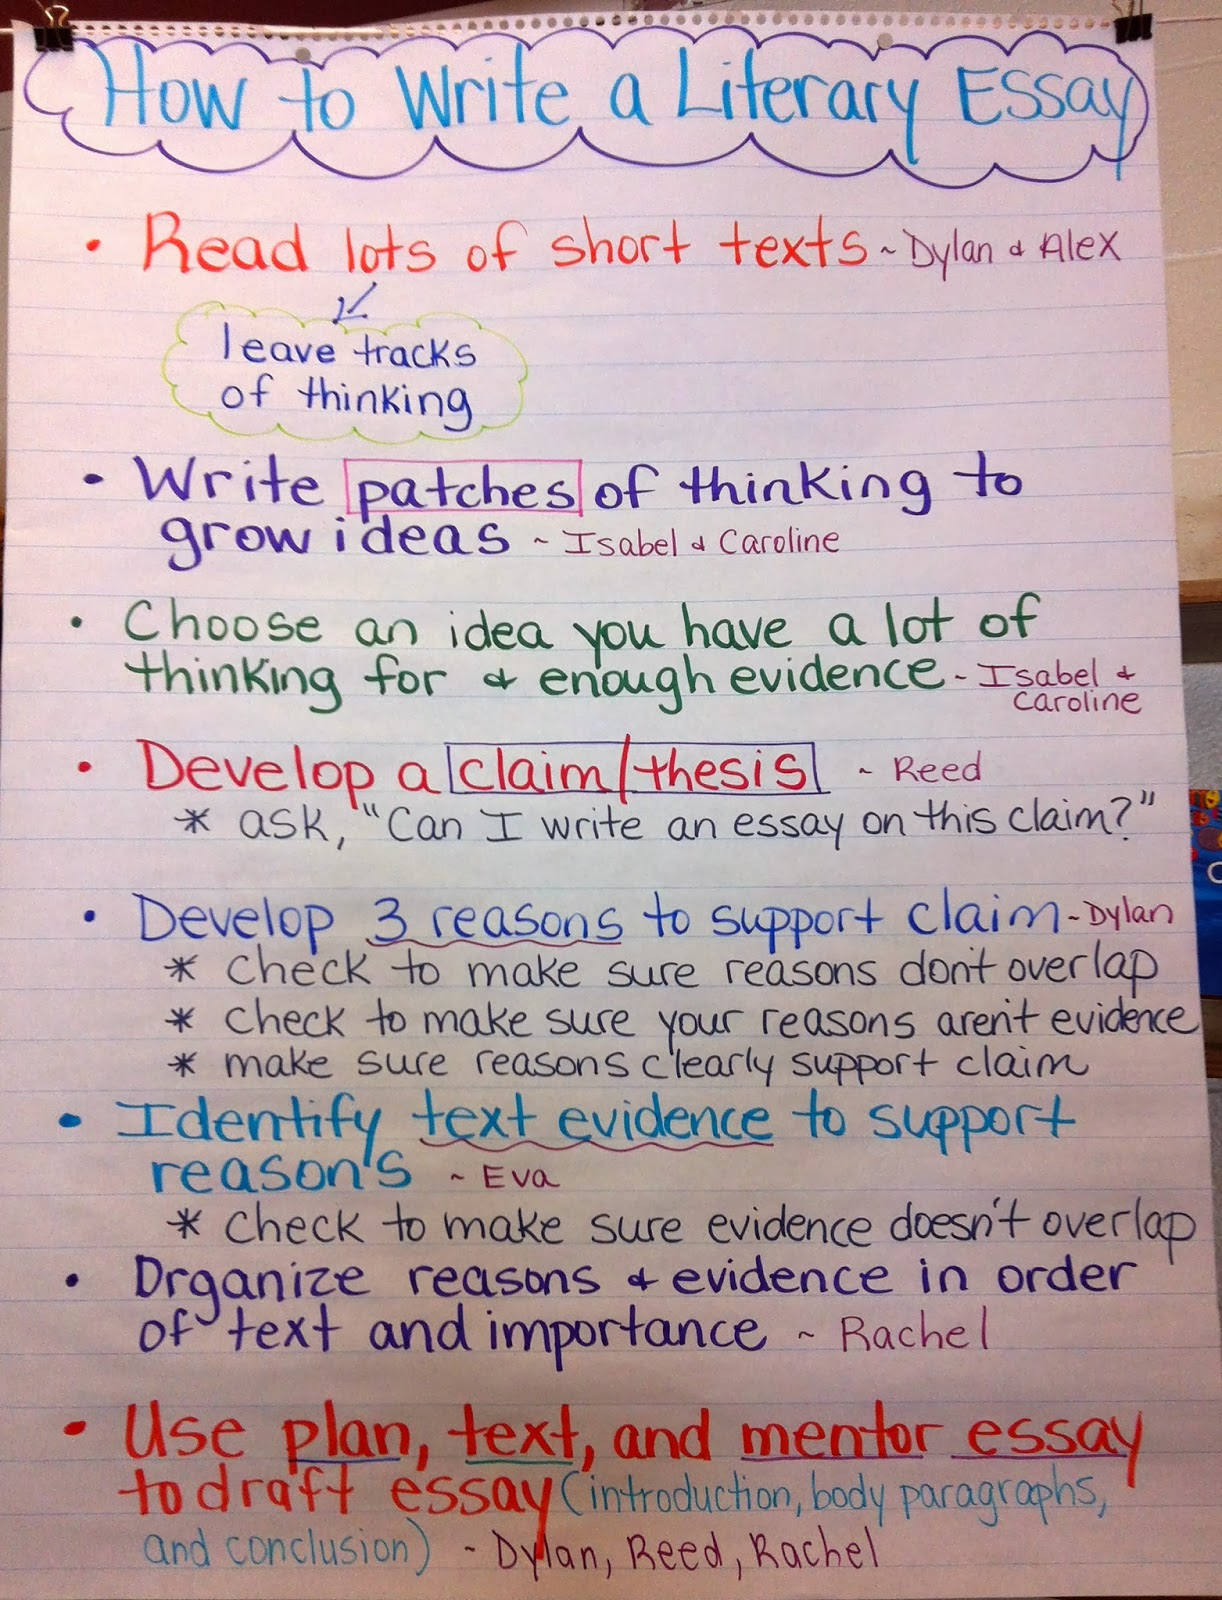 writing a literary essay writing a literary essay tk essays about teaching - Teaching Essay Writing To Esl Students